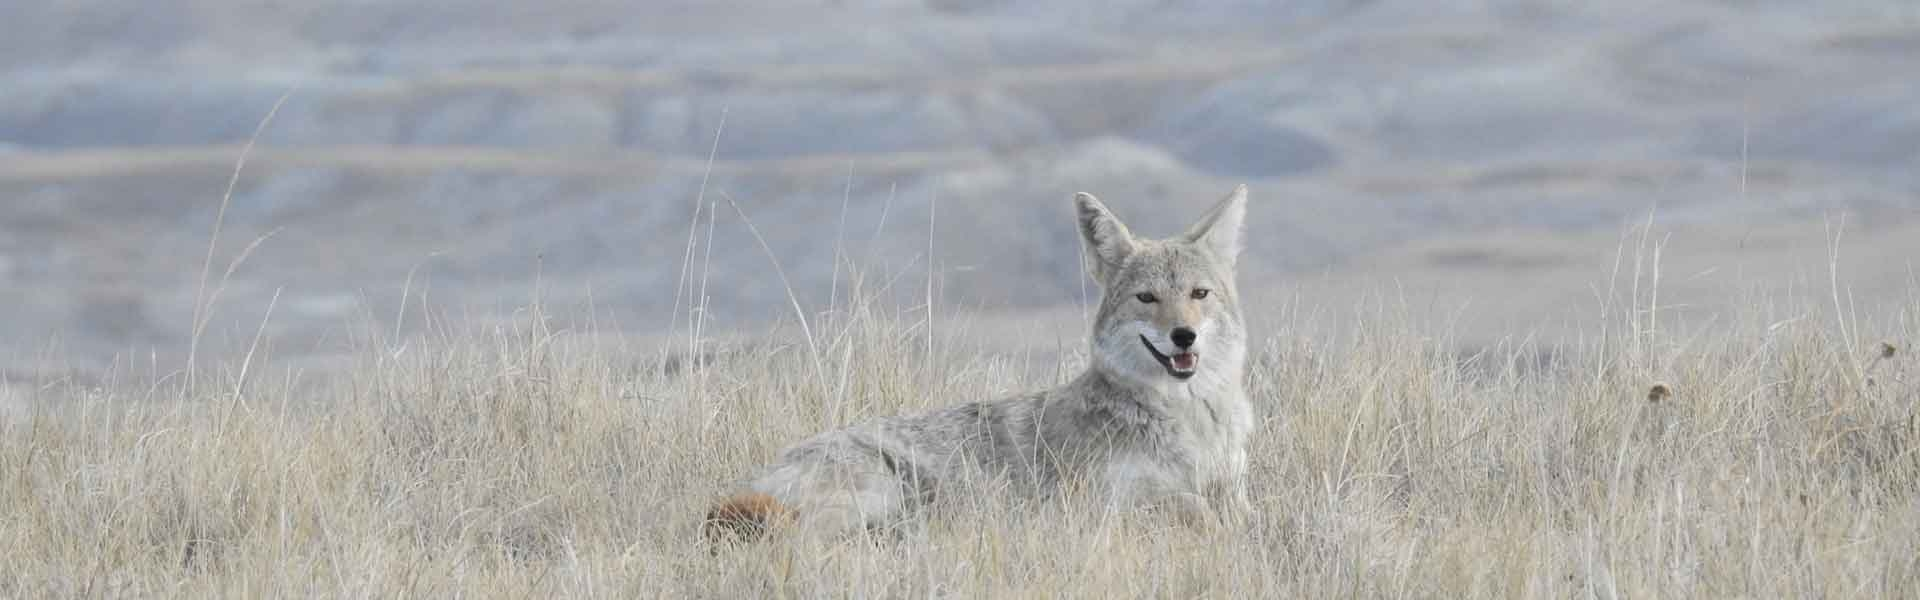 South Dakota Predator Hunting | Coyote Hunts in SD